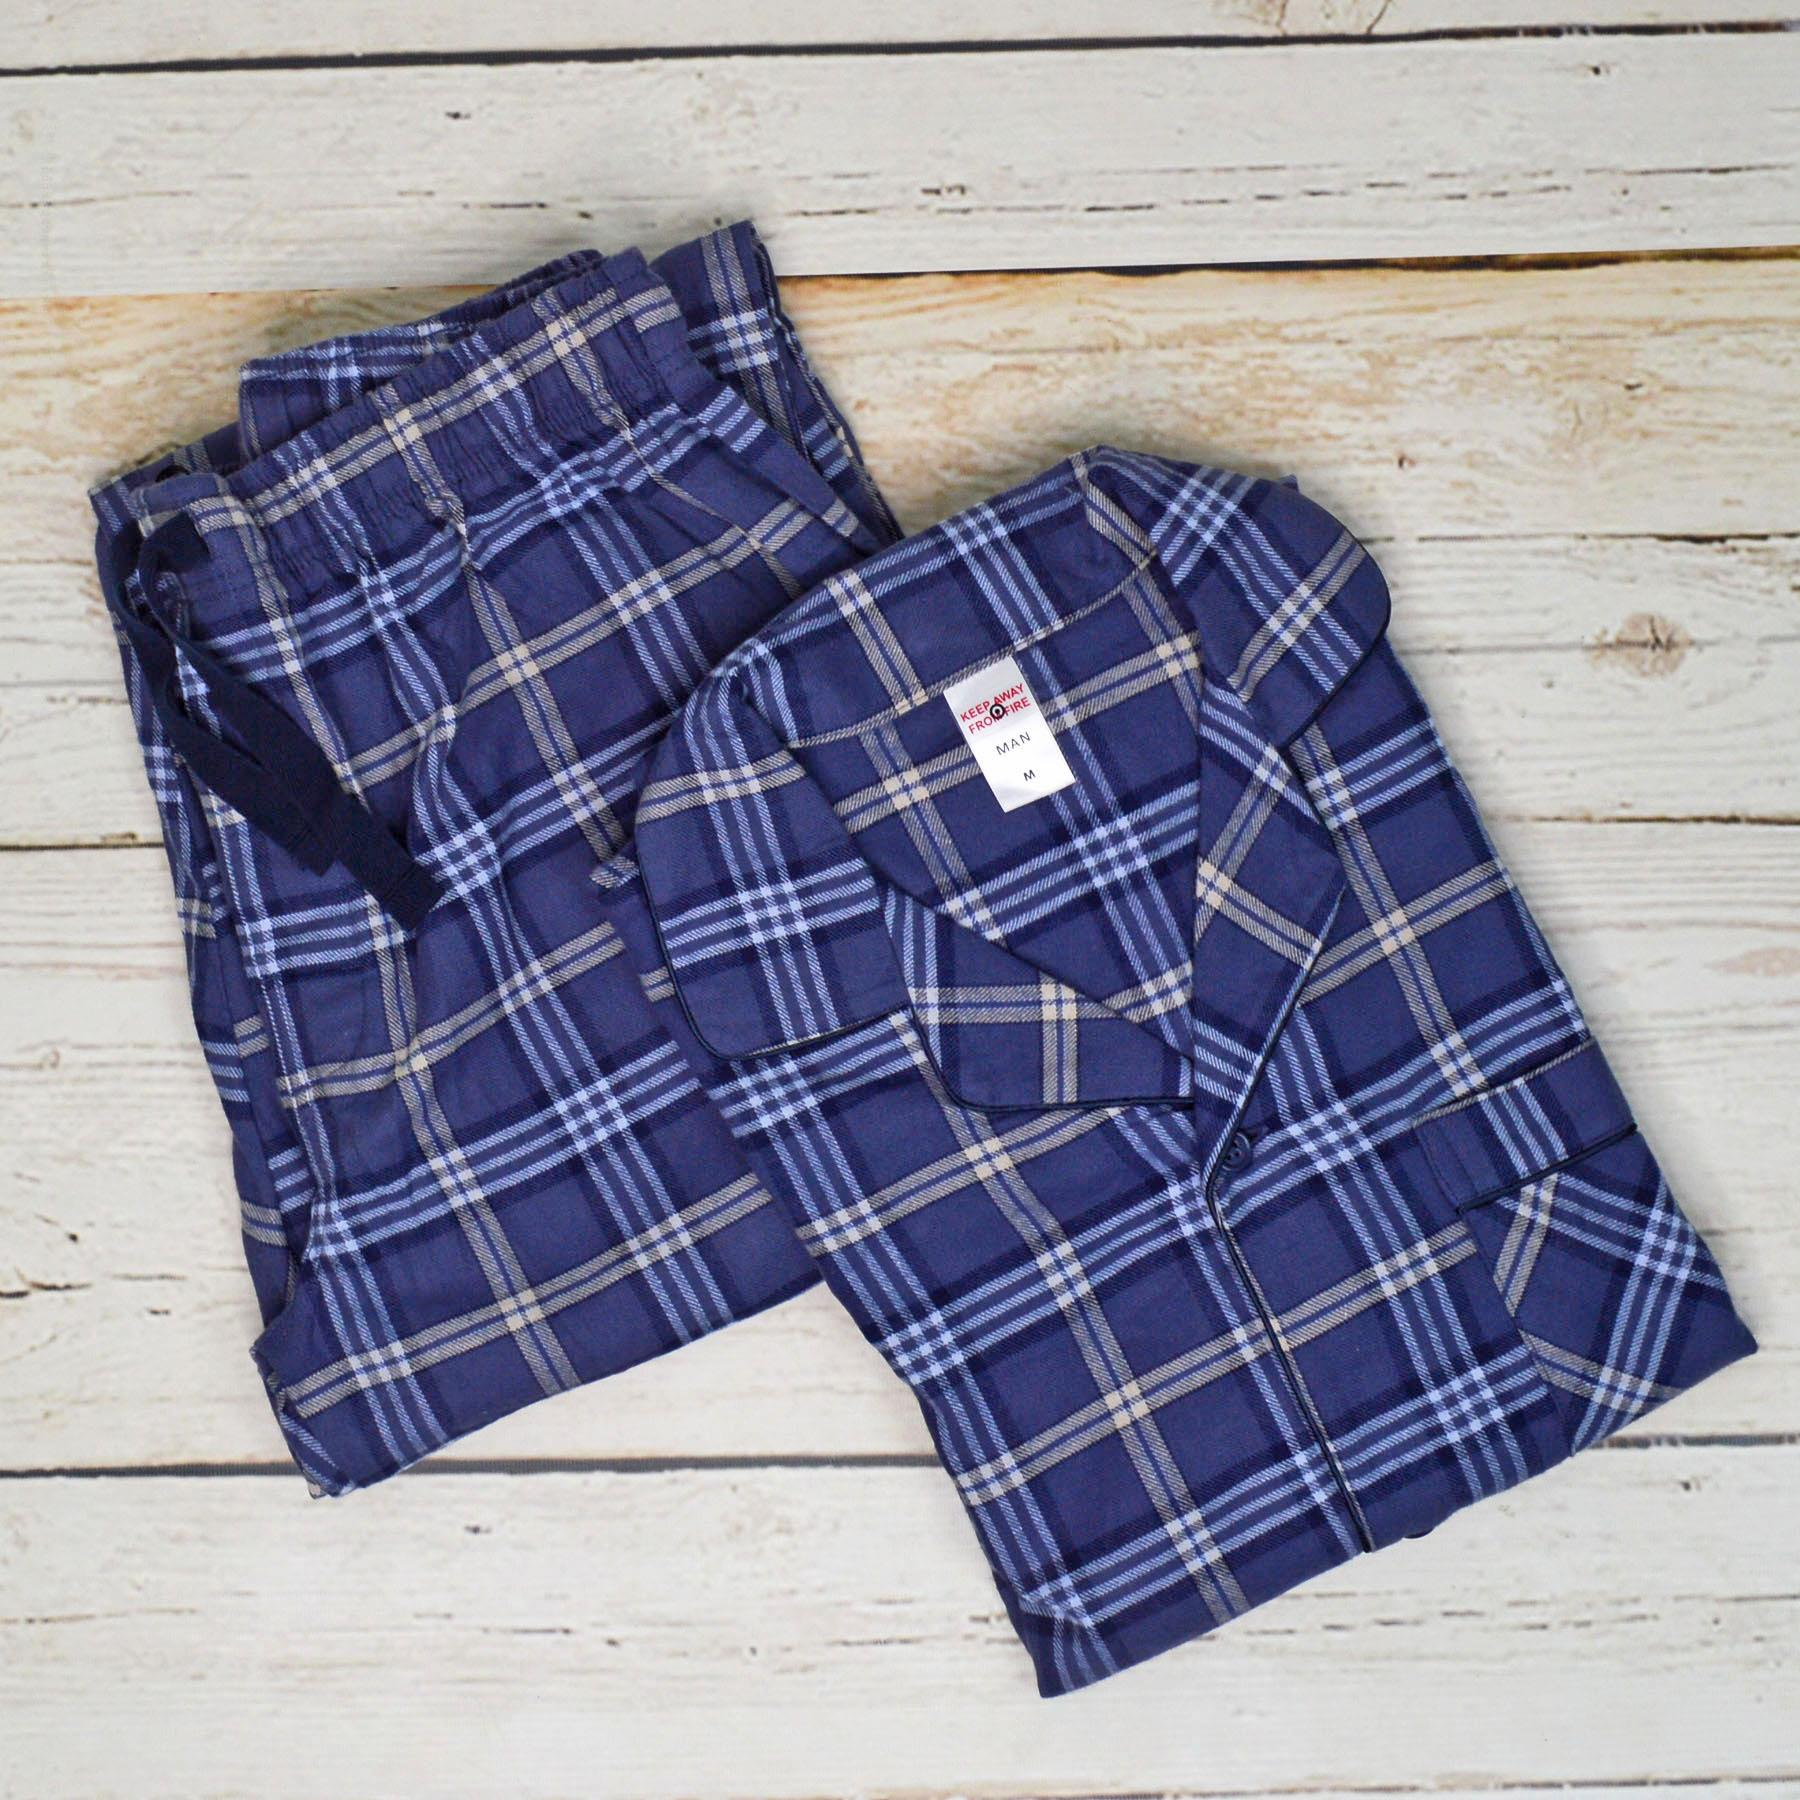 NEW-Mens-Brushed-Pure-Cotton-Check-Pyjamas-Flannelette-PJ-Set-in-Blue-Red-Grey thumbnail 6